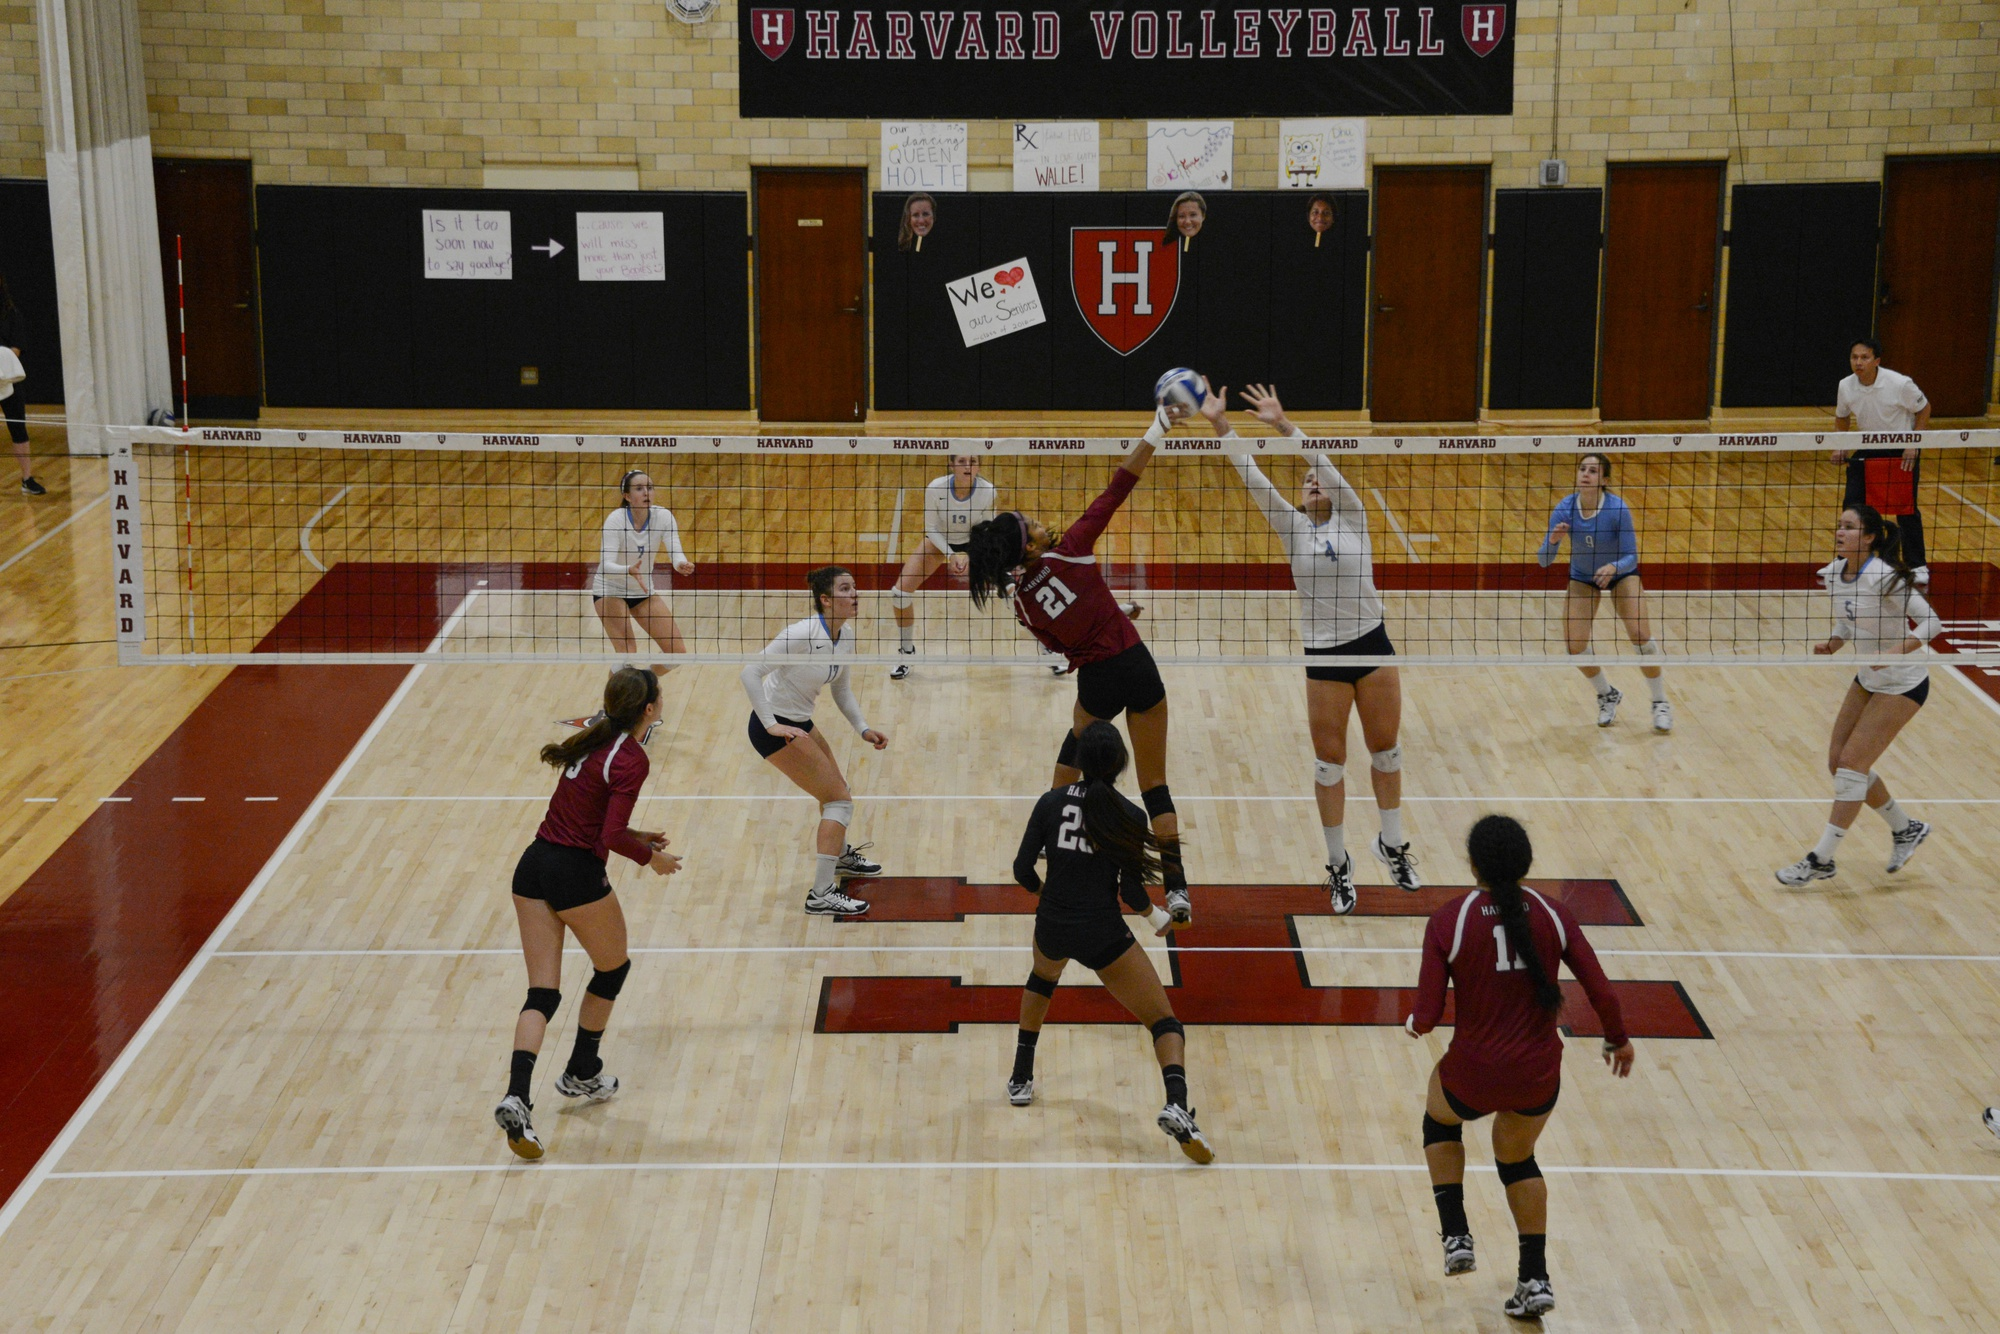 Sophomore Christina Cornelius spikes a ball during the Crimson's 3-0 victory against Columbia on November 7, 2015. Without its four graduated seniors, the team will rely on all of its returning and new members, and especially Cornelius and co-captain Corie Bain to lead the team's attack as it looks to snap its losing streak.